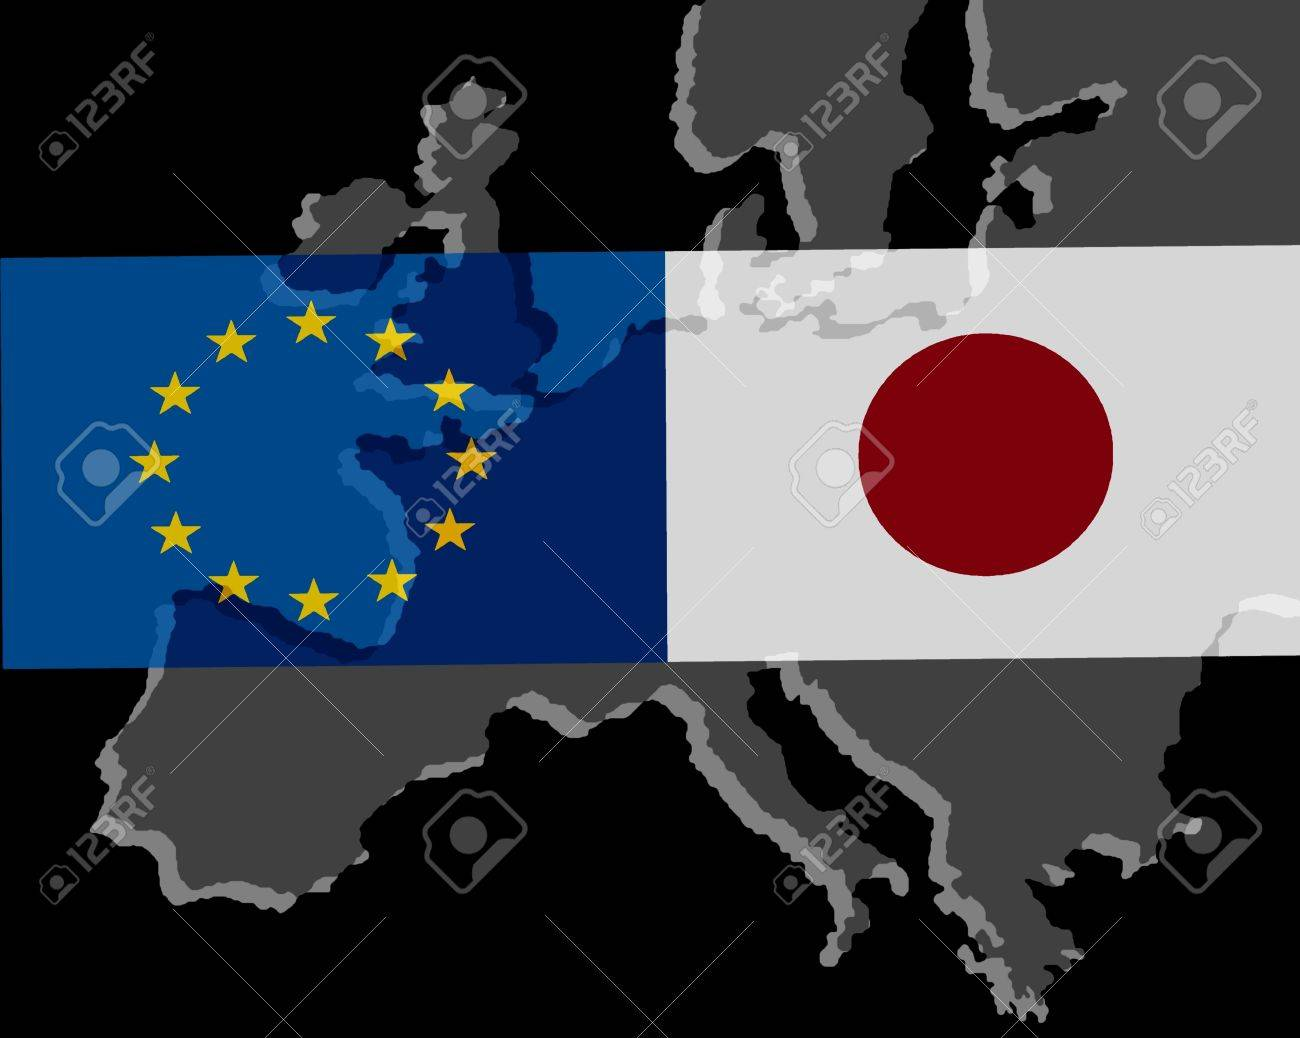 EU - Japan relationship - The flags of Japan and Europe lie over..